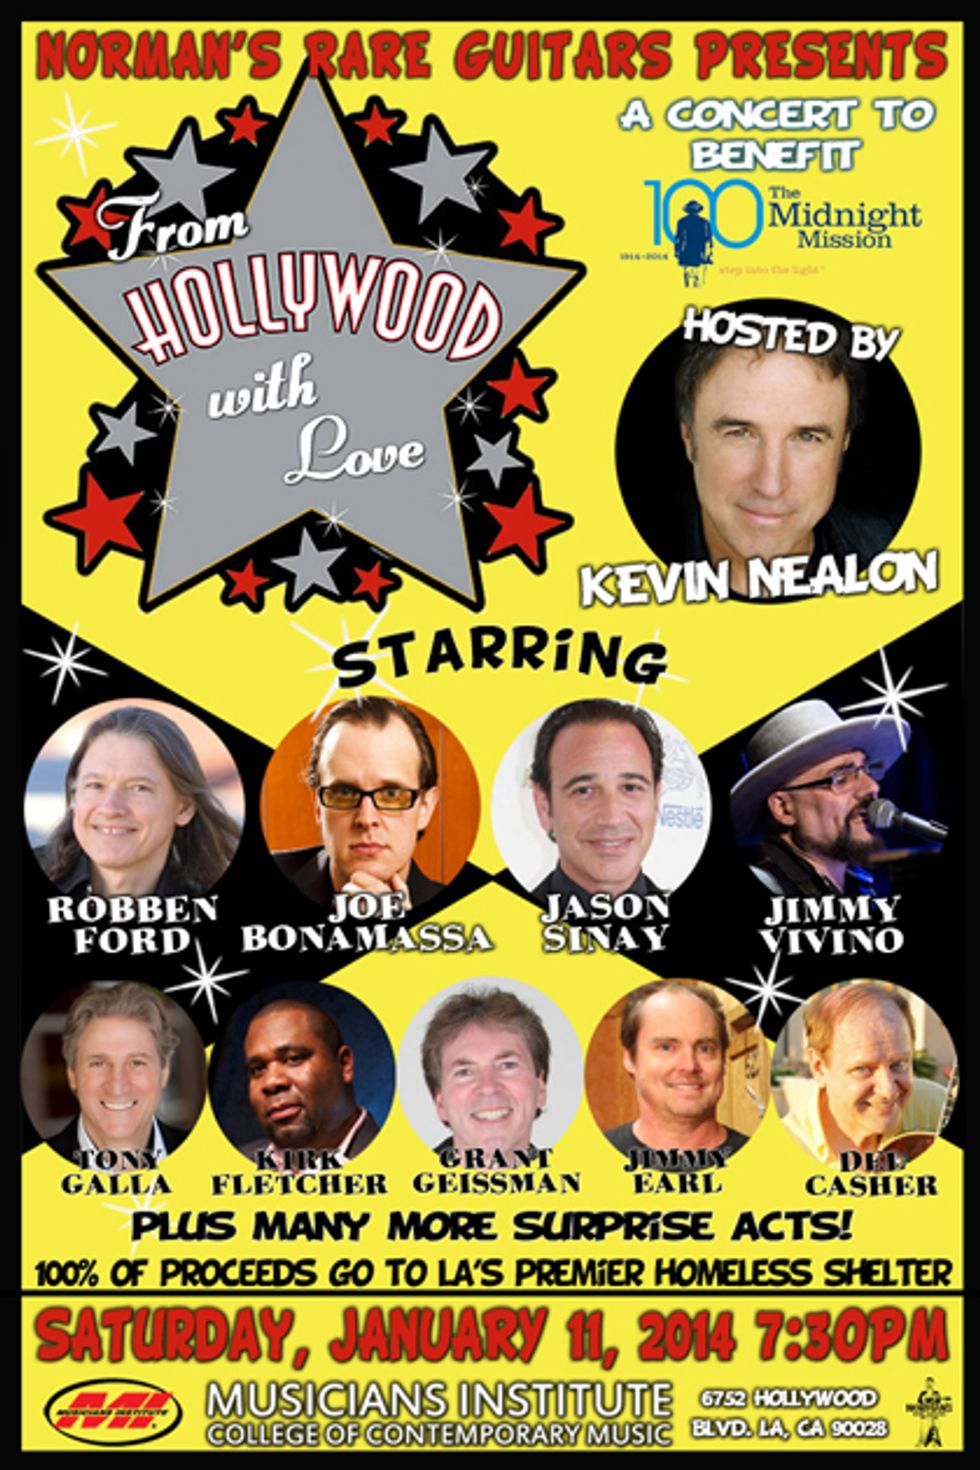 From Hollywood with Love Benefit